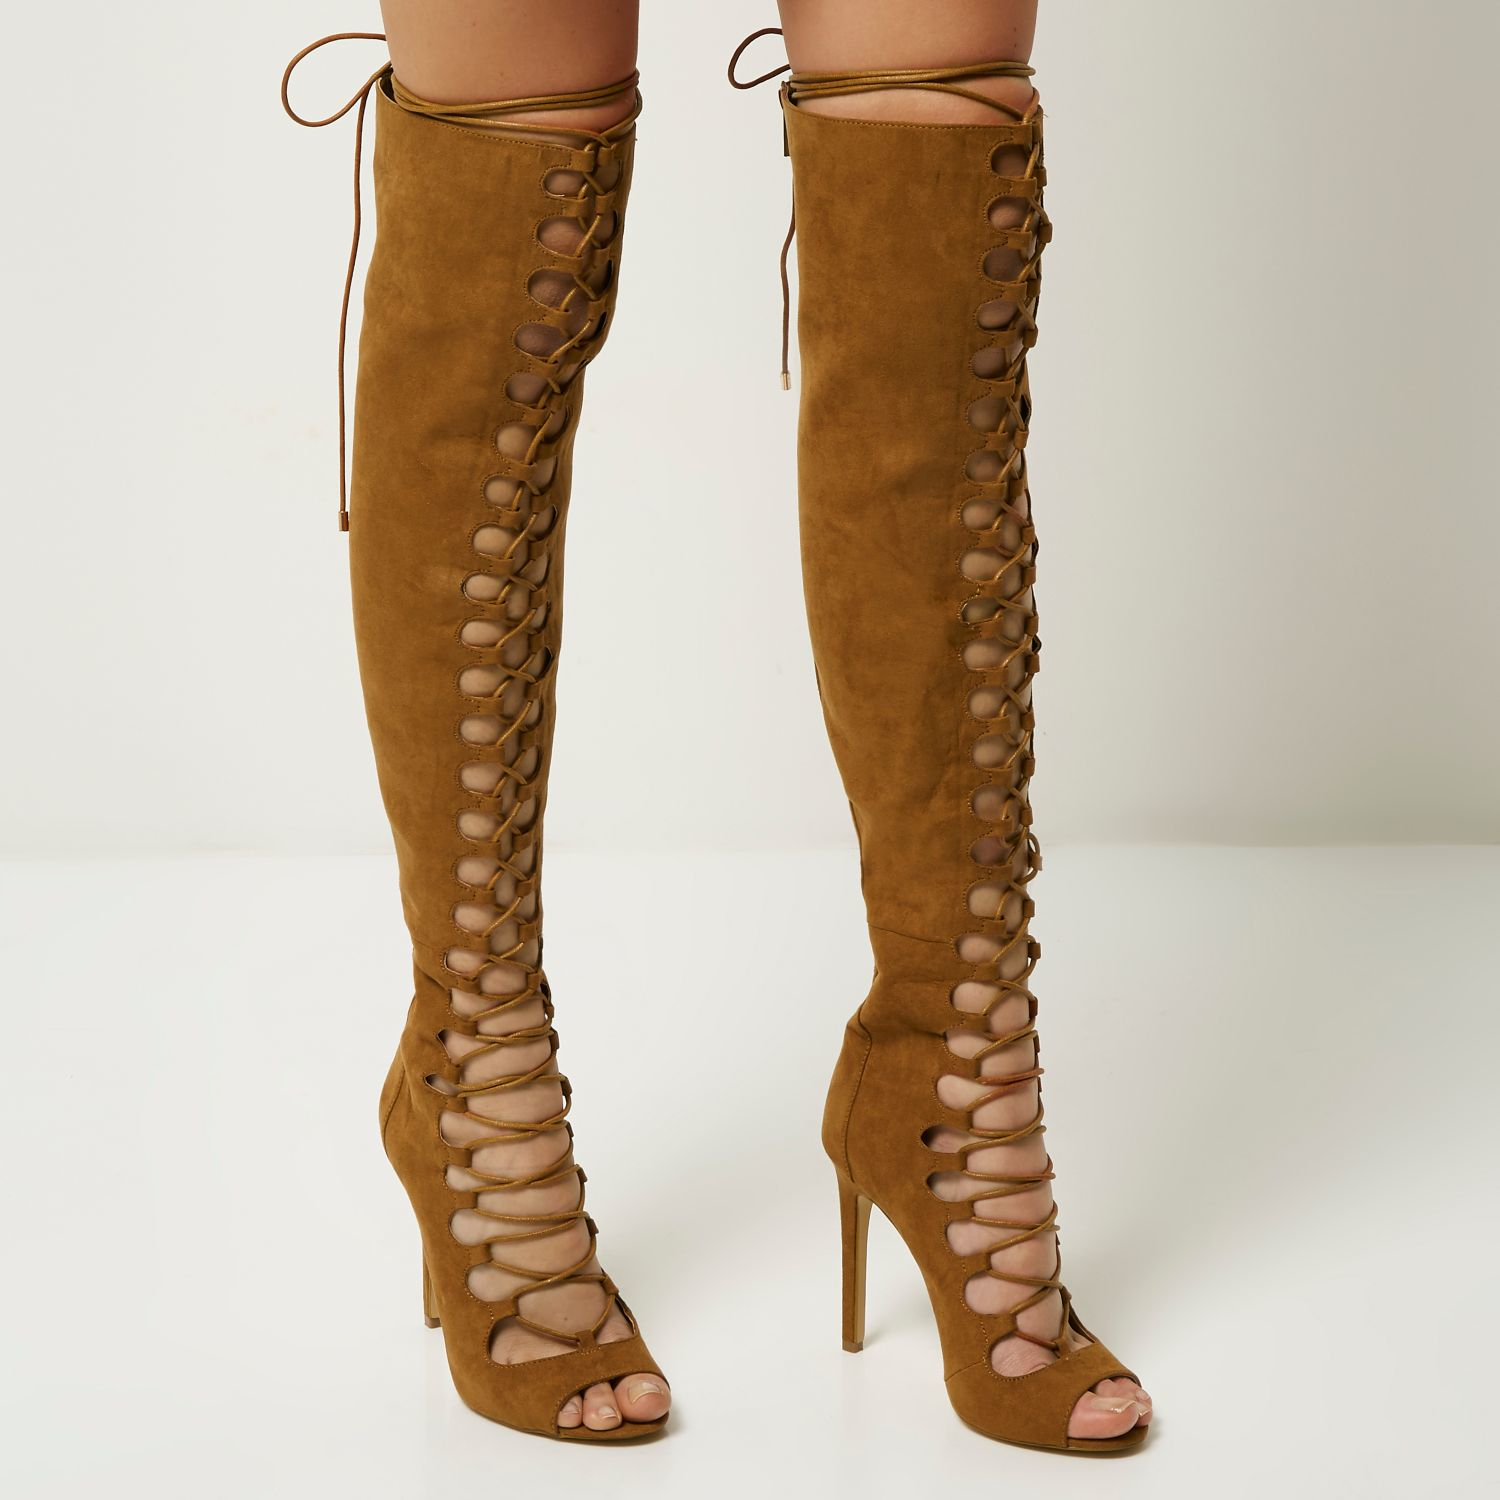 River island Tan Lace-up Over The Knee Heeled Boots in Brown | Lyst